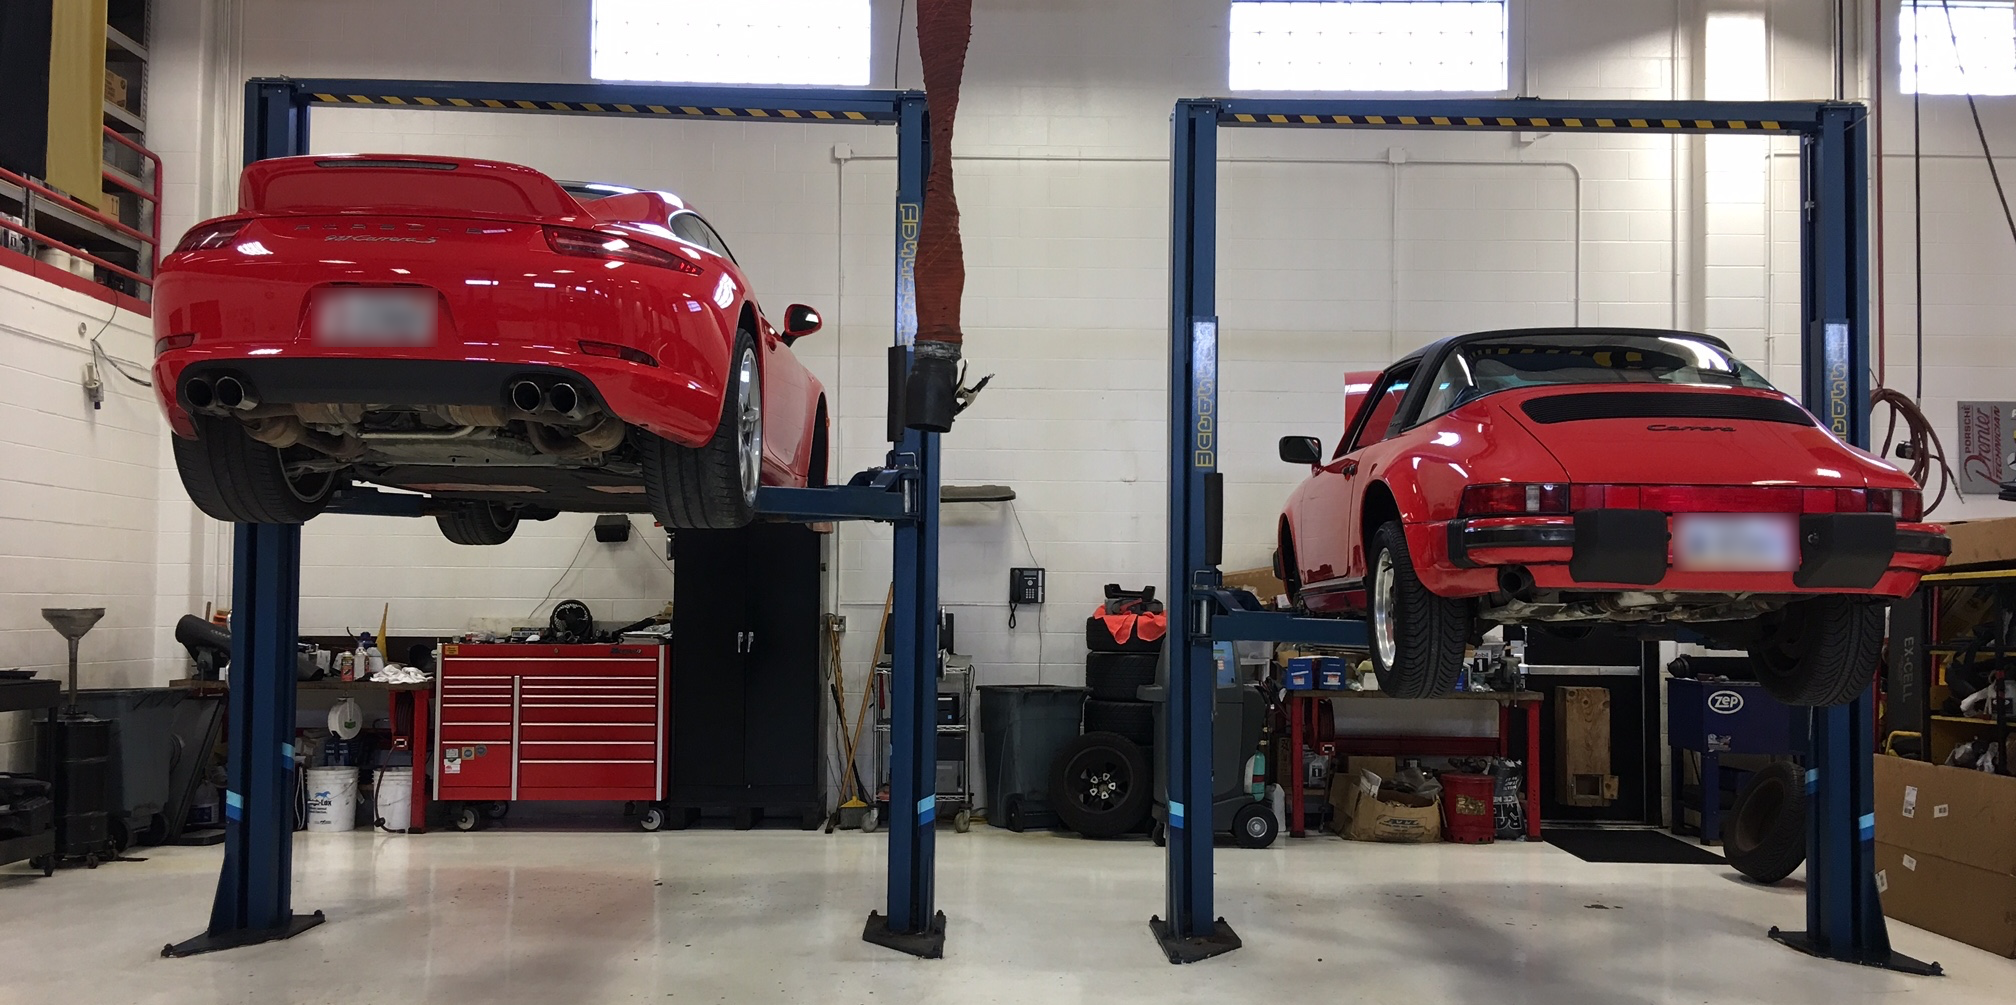 cars-on-lifts-euro-motorworks-shop-indianapolis